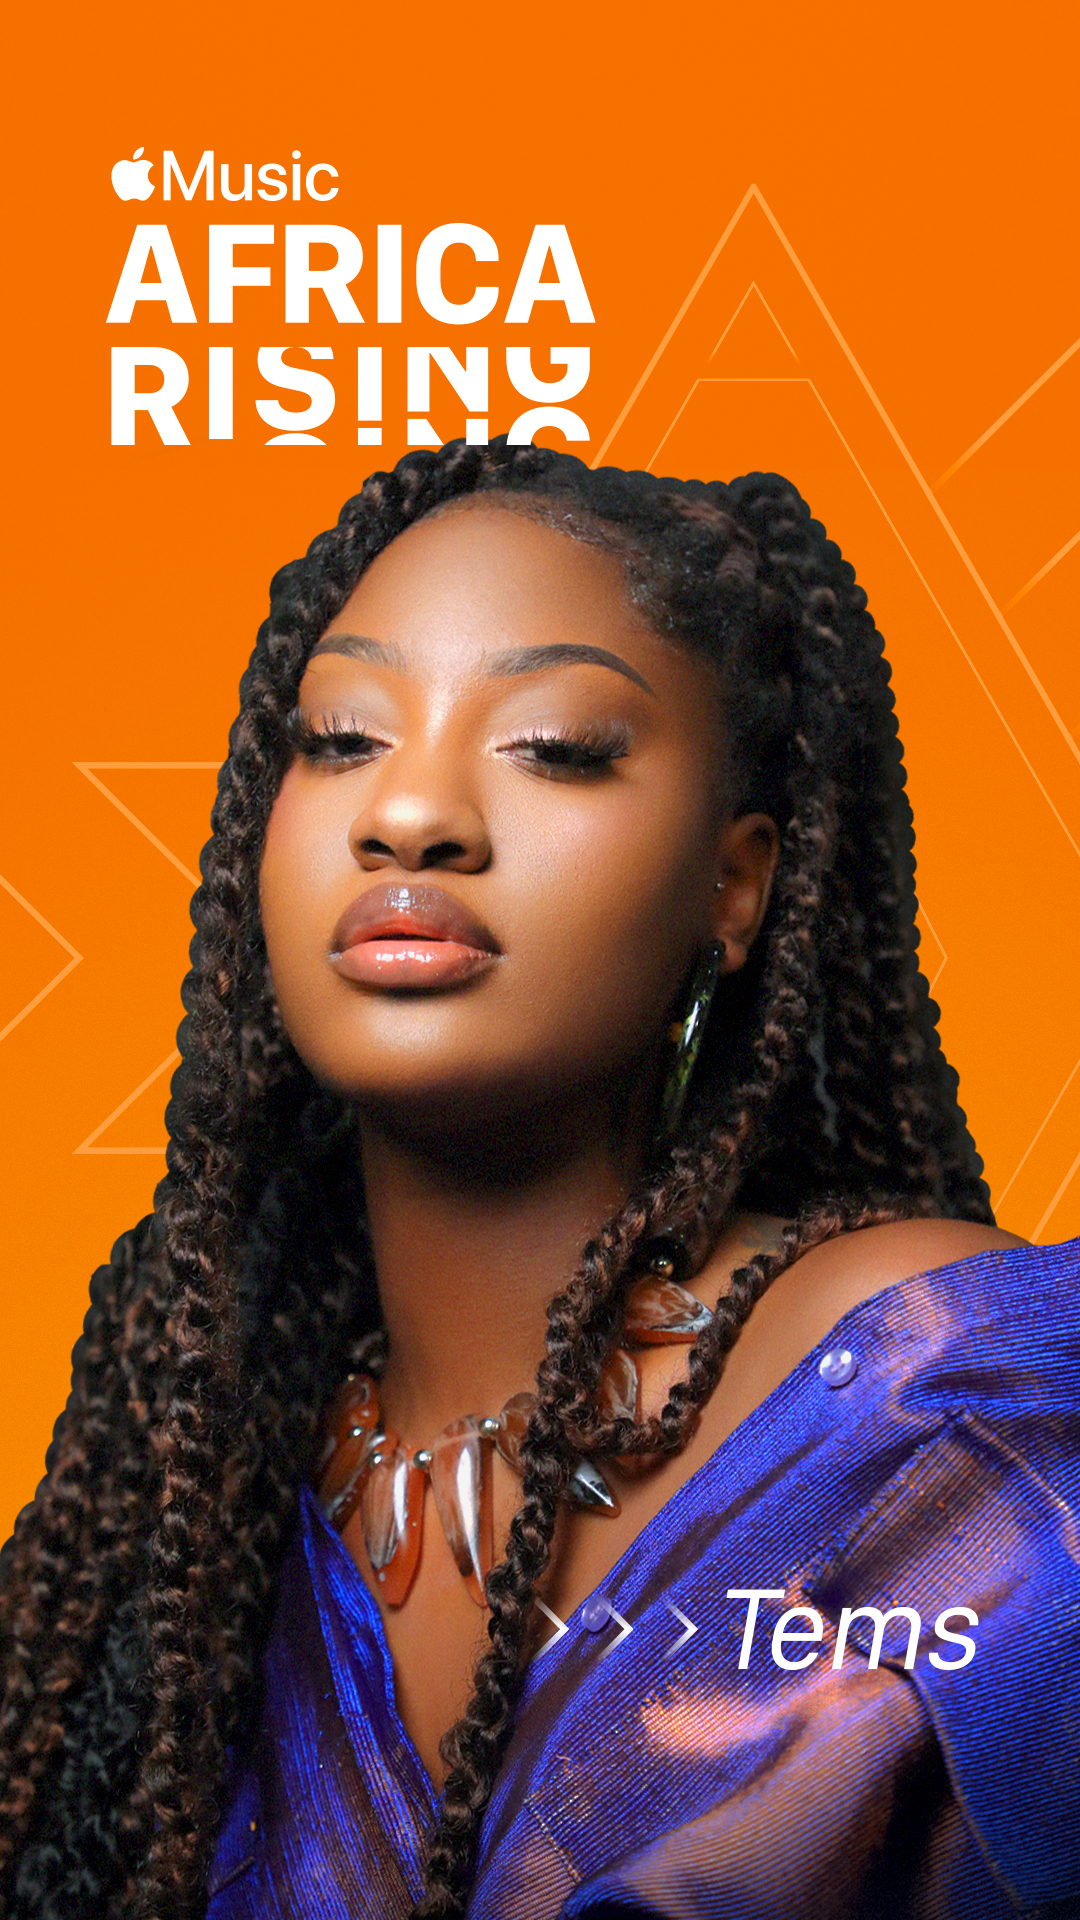 Apple Music's latest Africa Rising recipient is trailblazing Nigerian songstress and producer, Tems